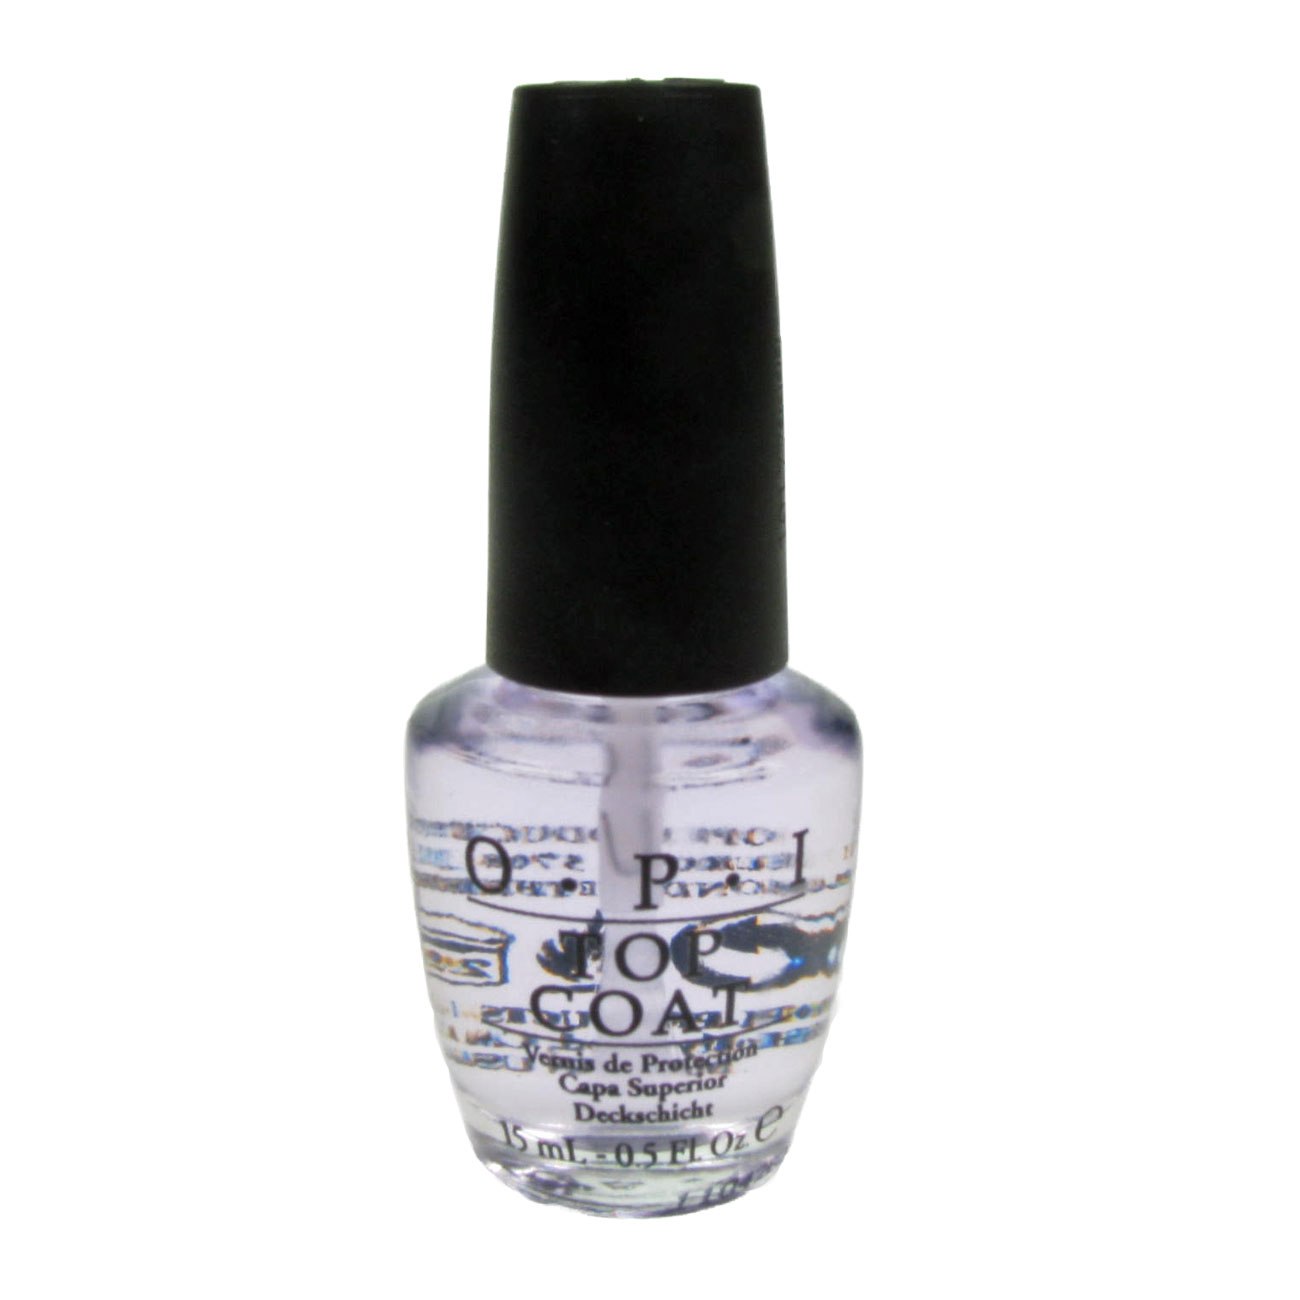 opi nail lacquer polish varnish 15ml opi top coat nt t30 ebay. Black Bedroom Furniture Sets. Home Design Ideas